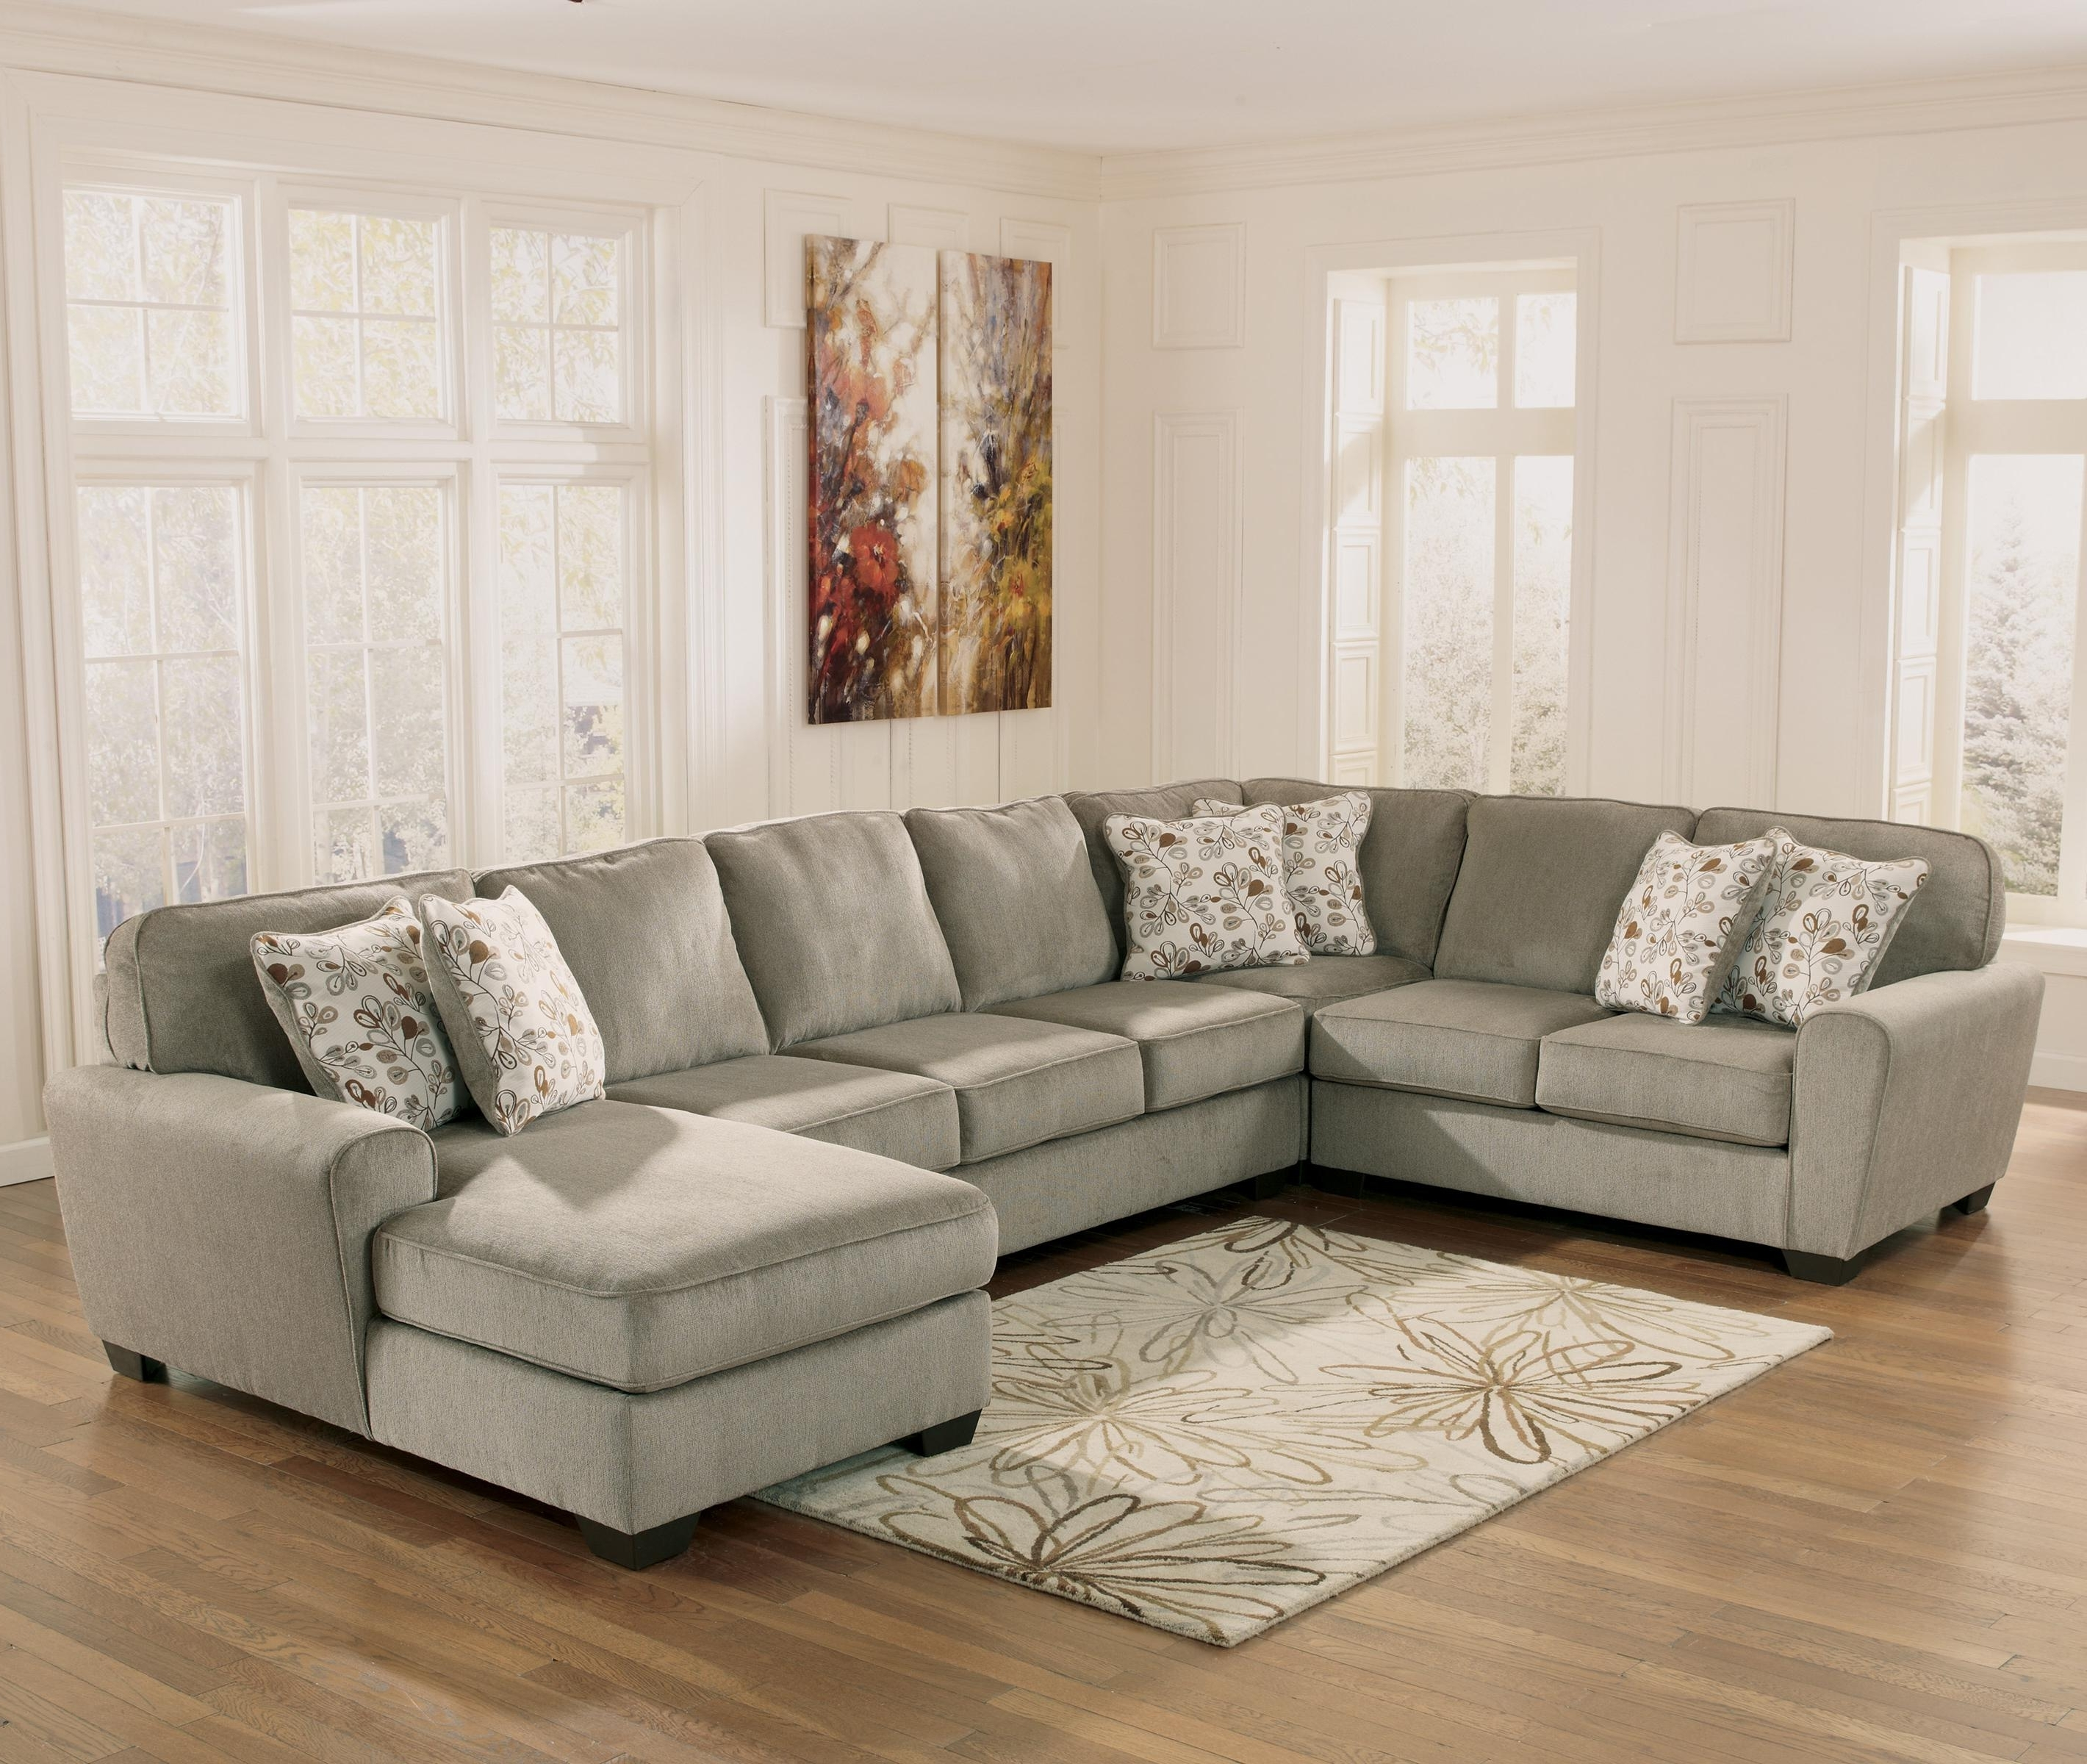 Widely Used Ashley Furniture Patola Park – Patina 4 Piece Sectional With Right With Regard To Ashley Furniture Chaise Sofas (View 15 of 15)